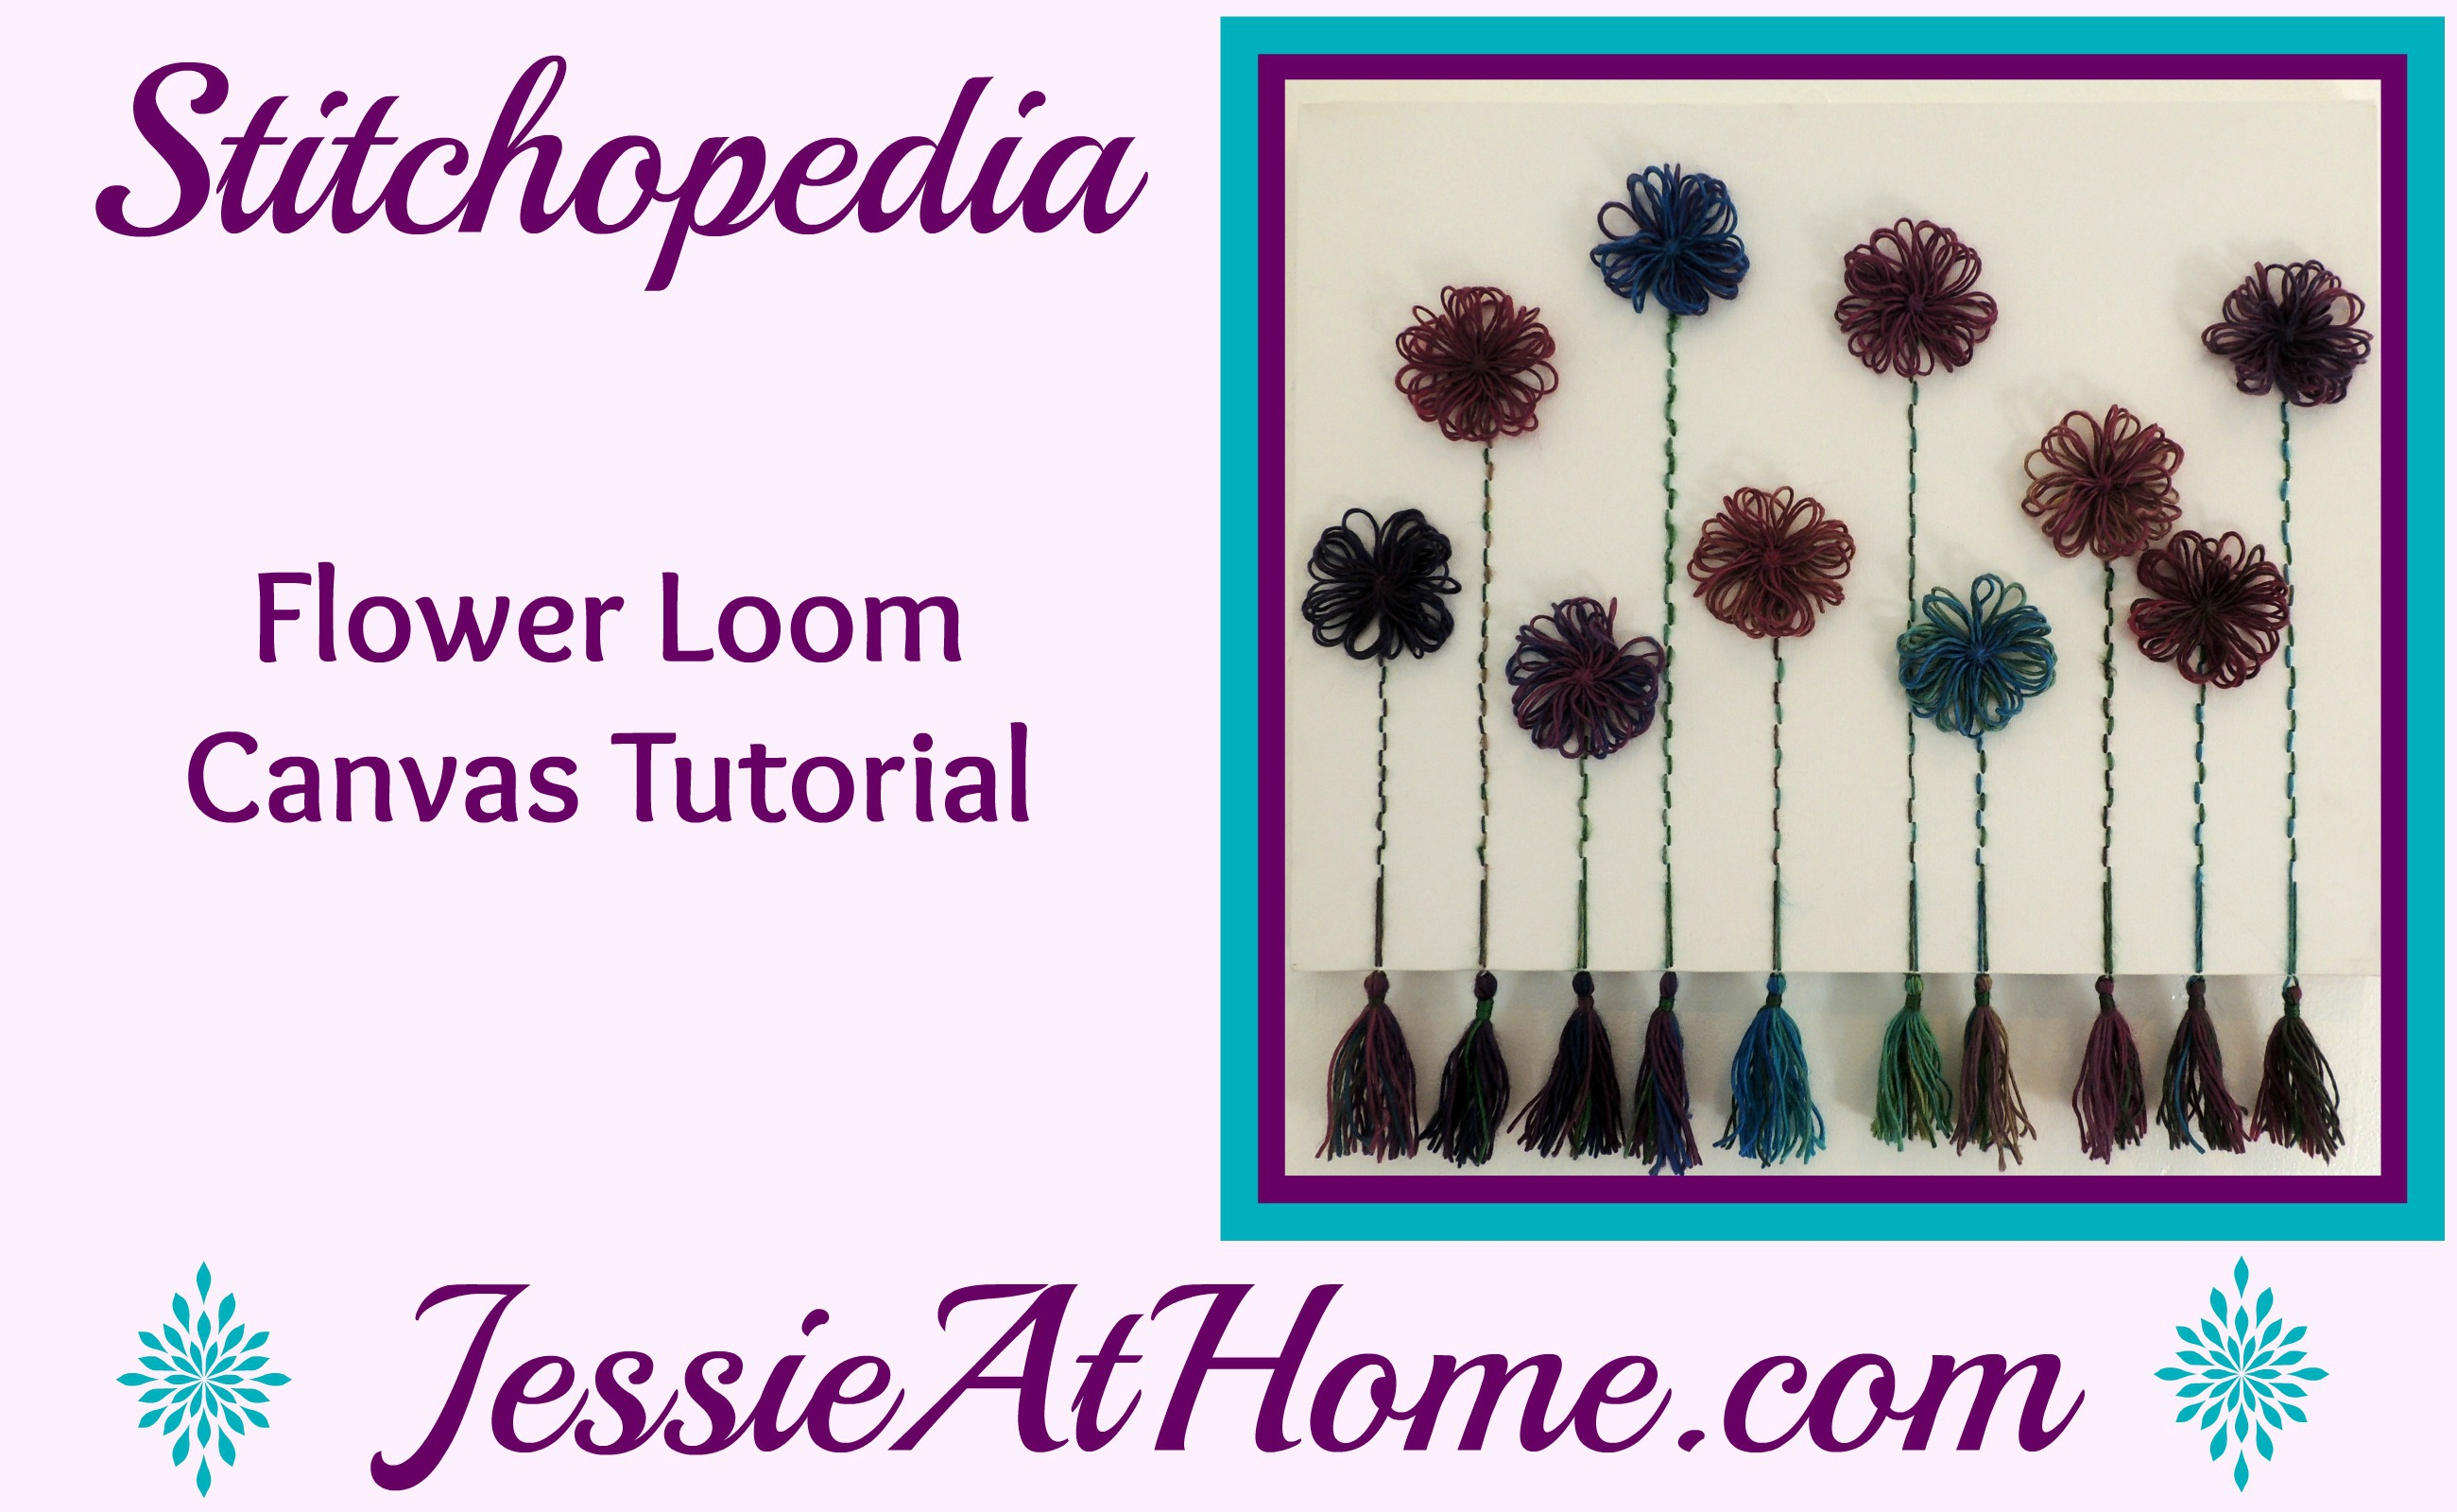 Stitchopedia Flower Loom Canvas Tutorial